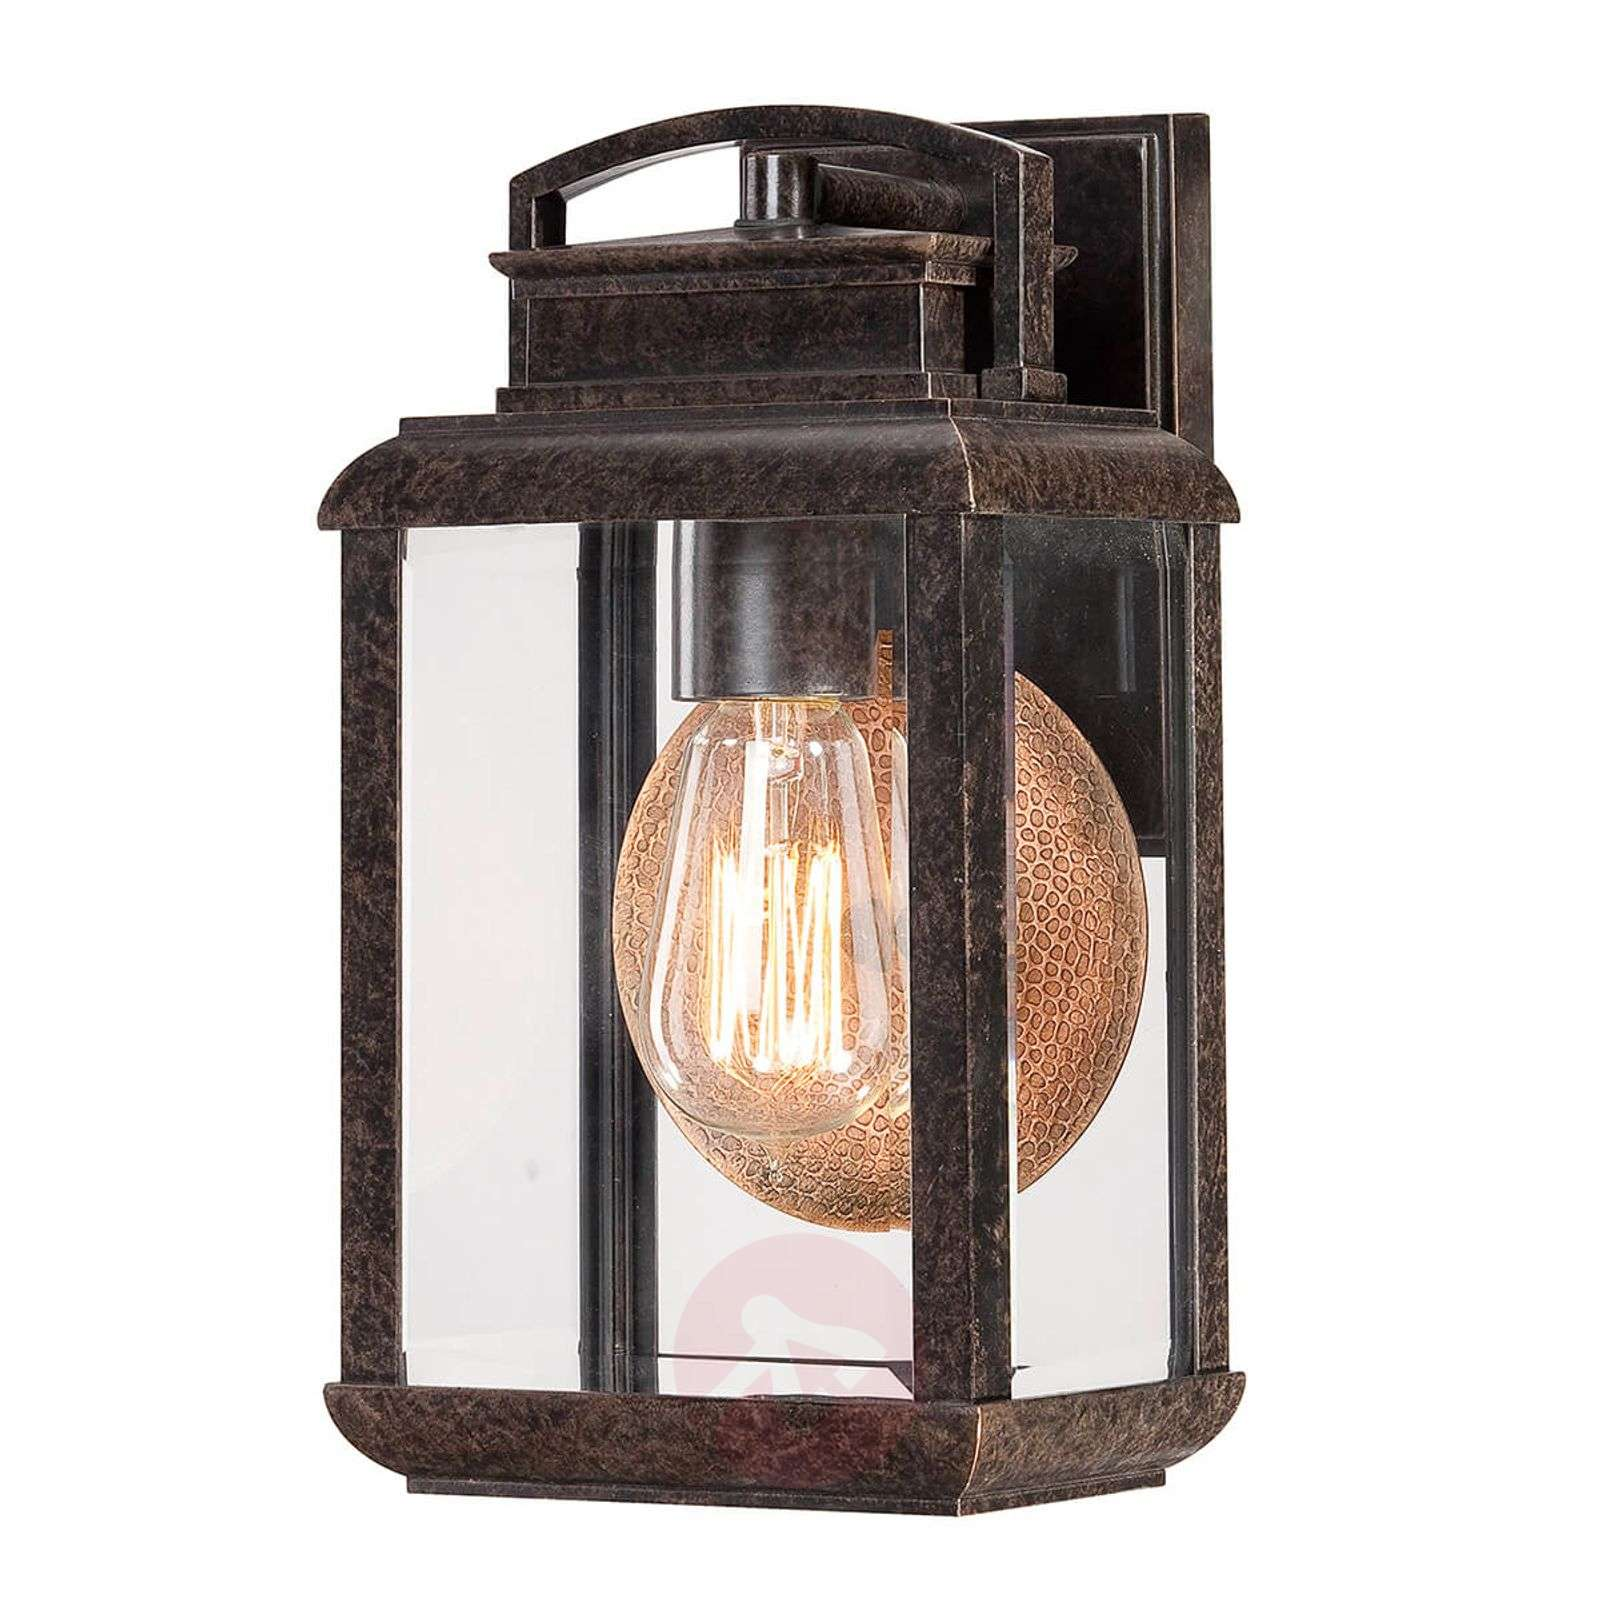 With a vintage look Lyndon outdoor wall light-3048686-01